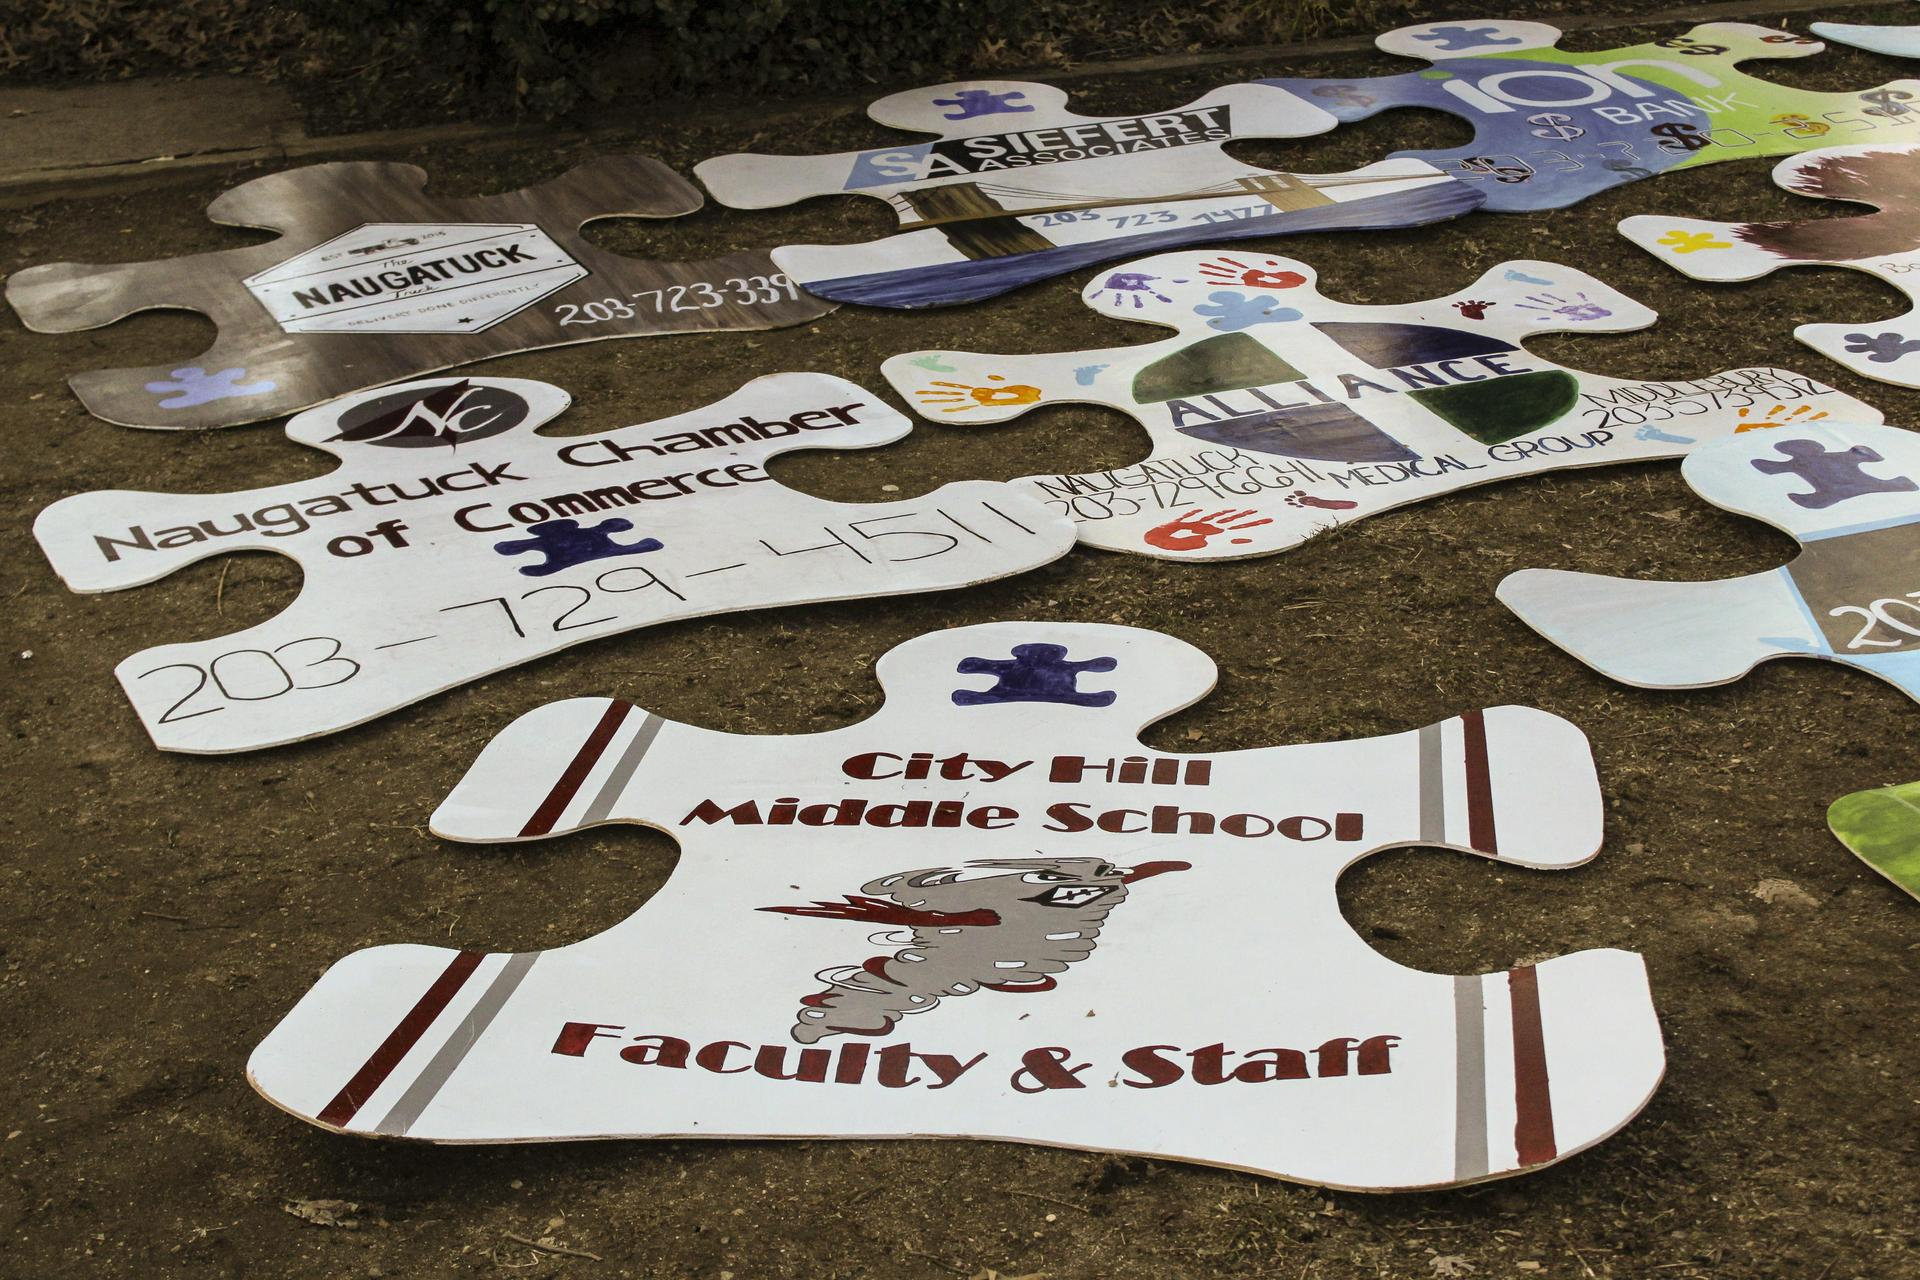 Giant wooden puzzle pieces with sponsor logos including City Hill Middle School Faculty & Staff